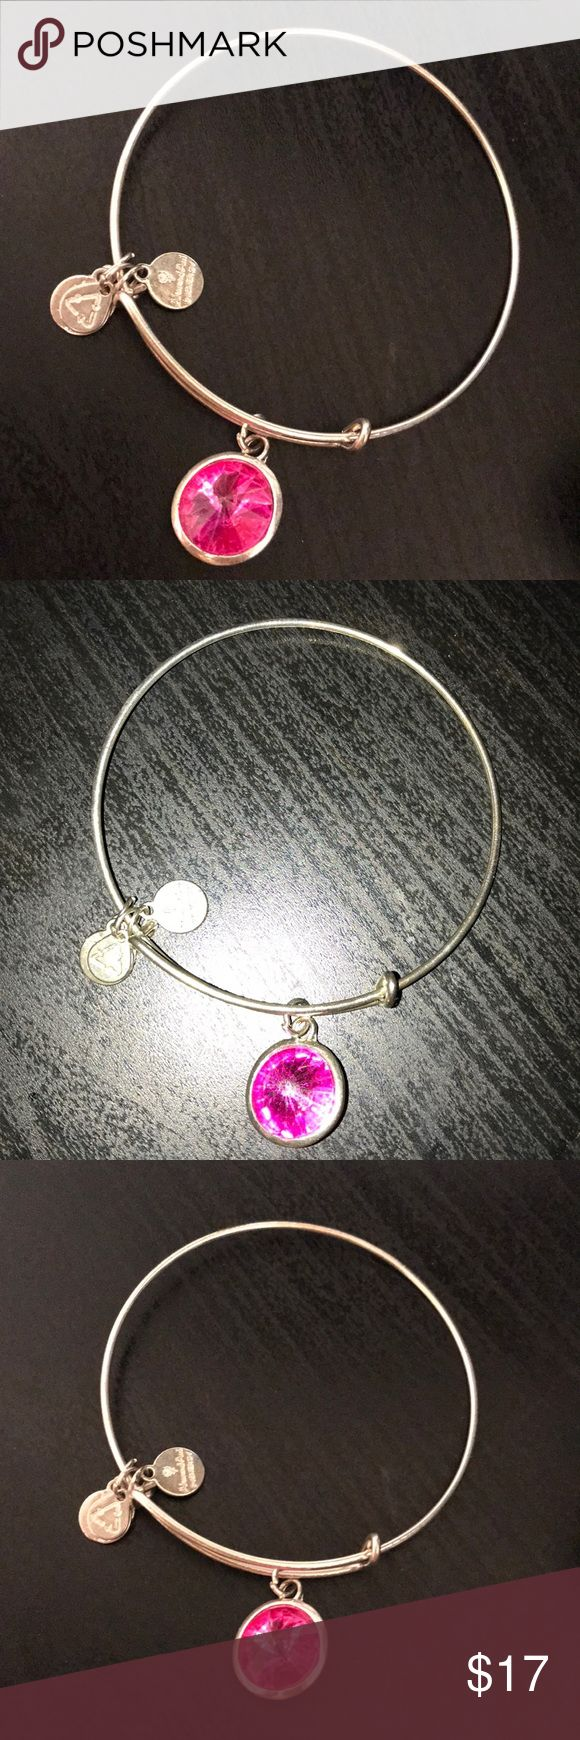 Alex and Ani bracelet It is the October gemstone. Prices are negotiable! It was worn only twice! Alex & Ani Jewelry Bracelets